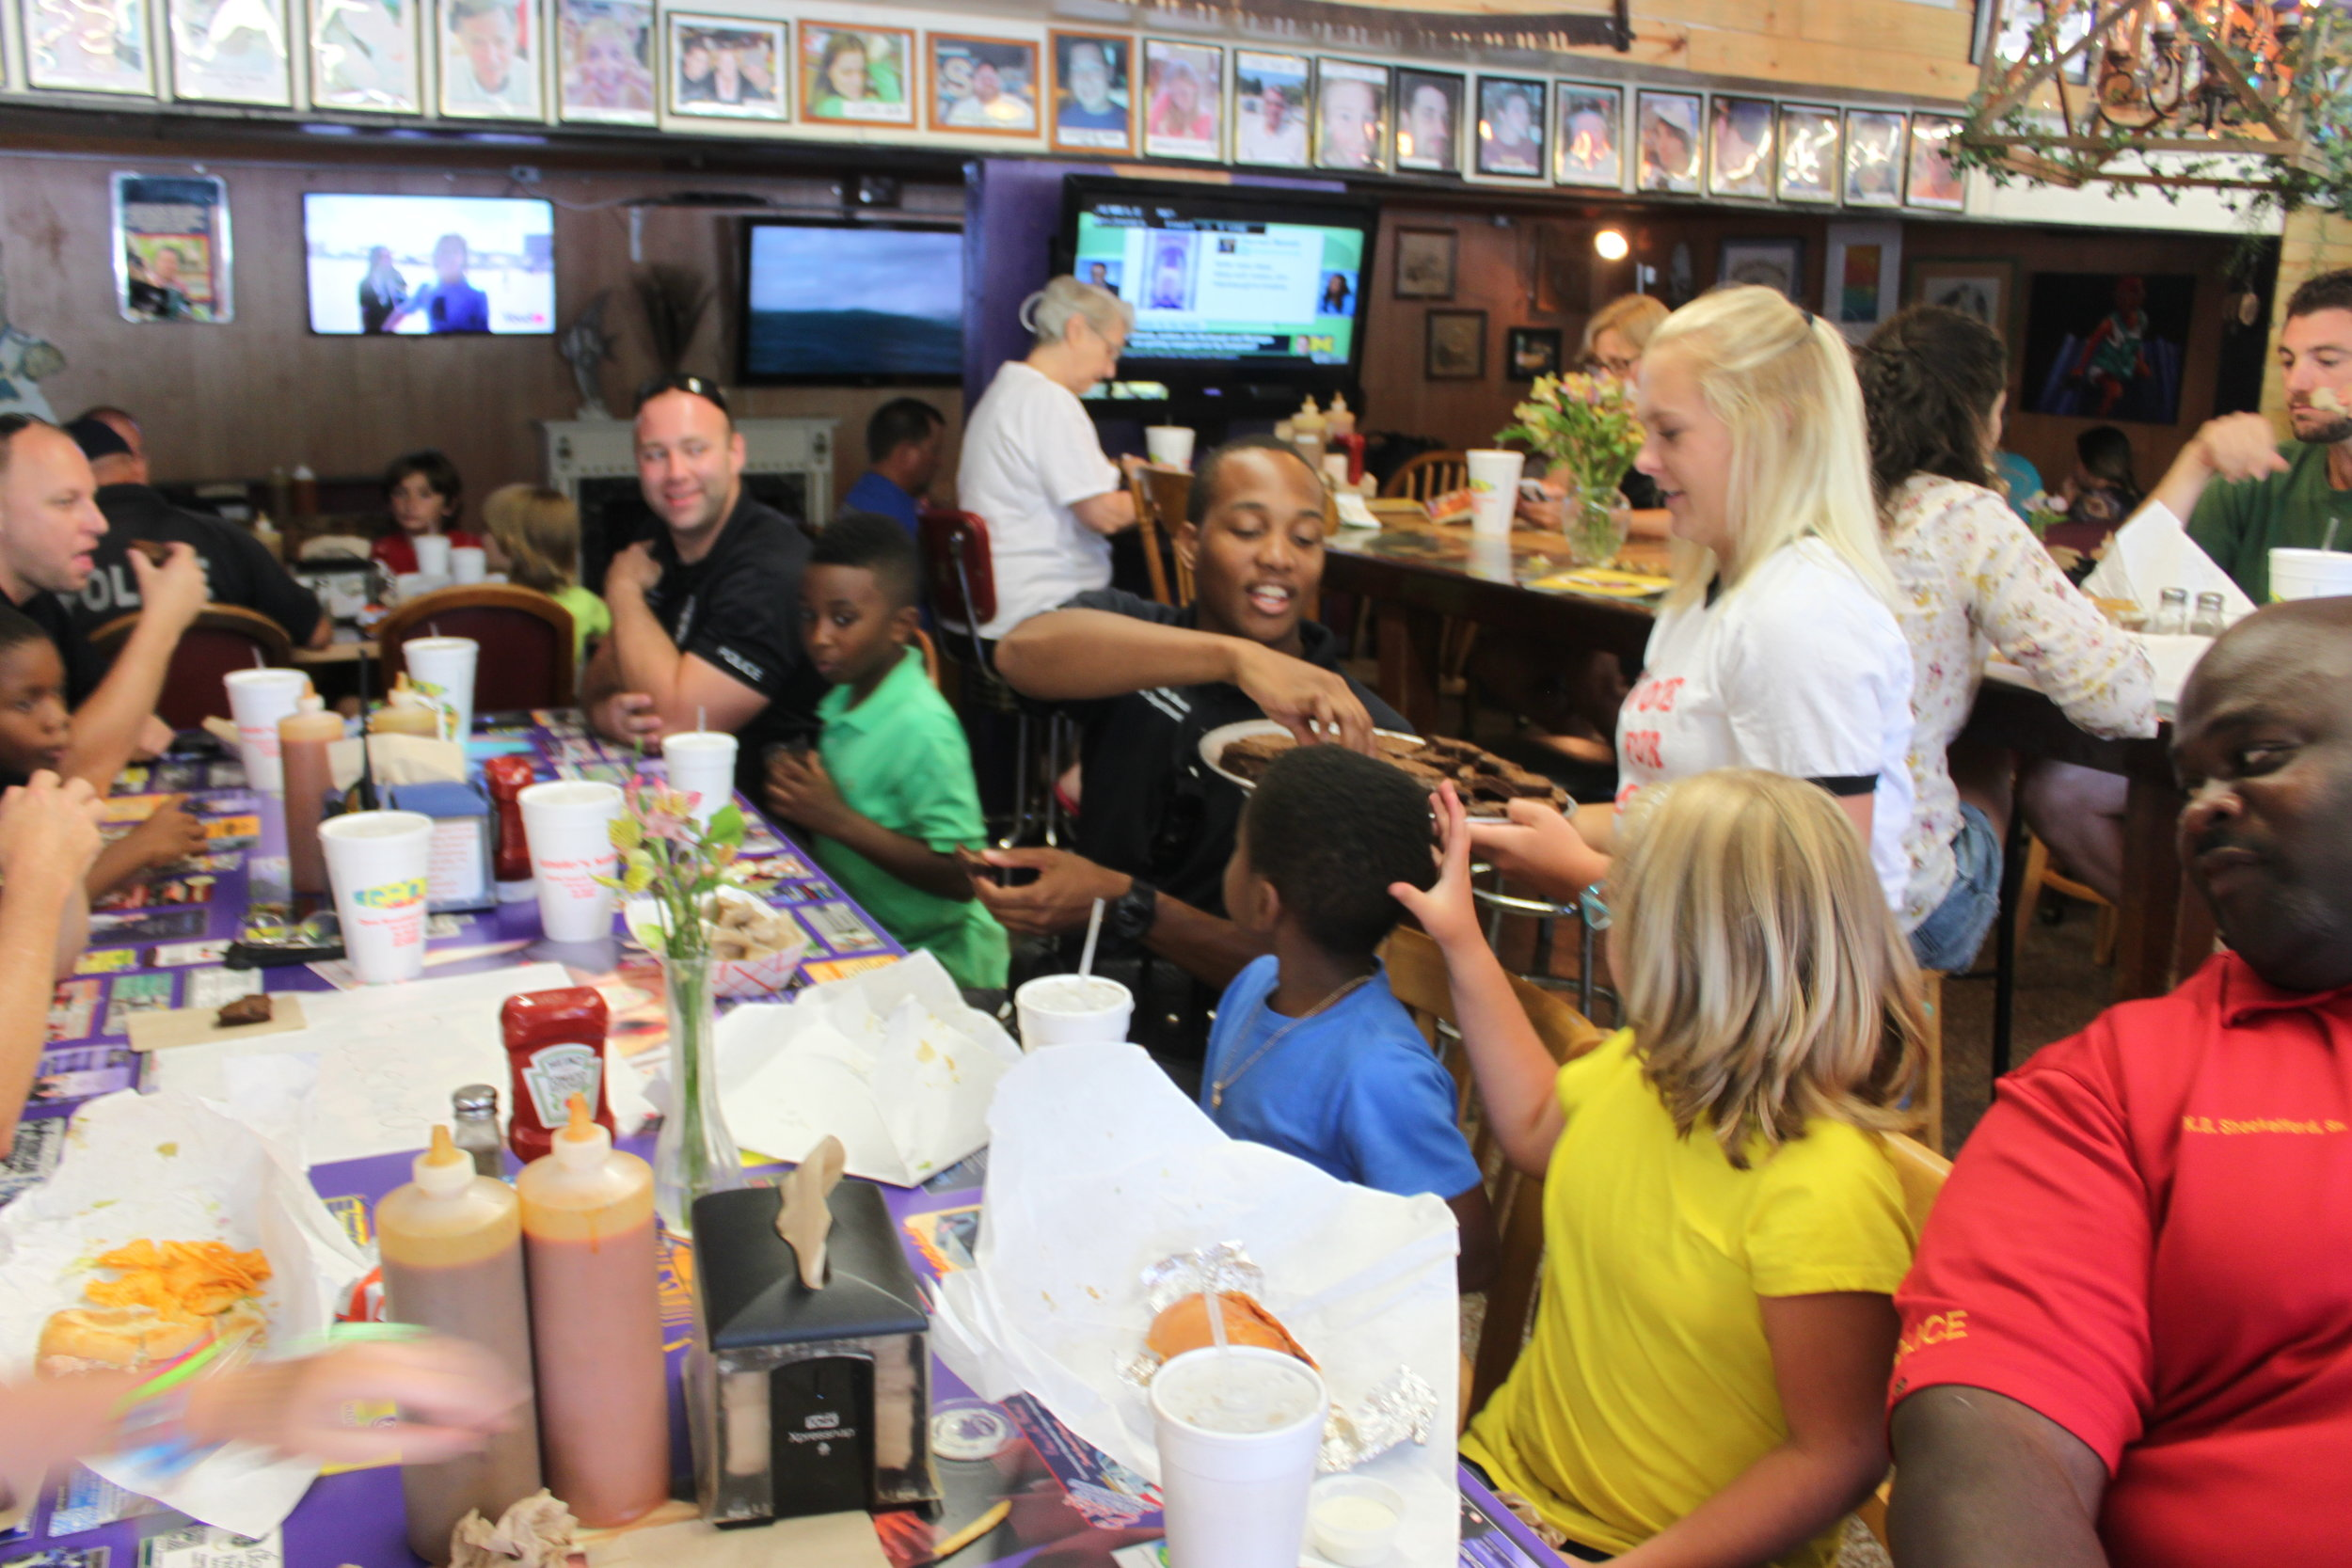 2016: Cops with Kids from Beaches Boys & Girls Club Event at Angie's Subs